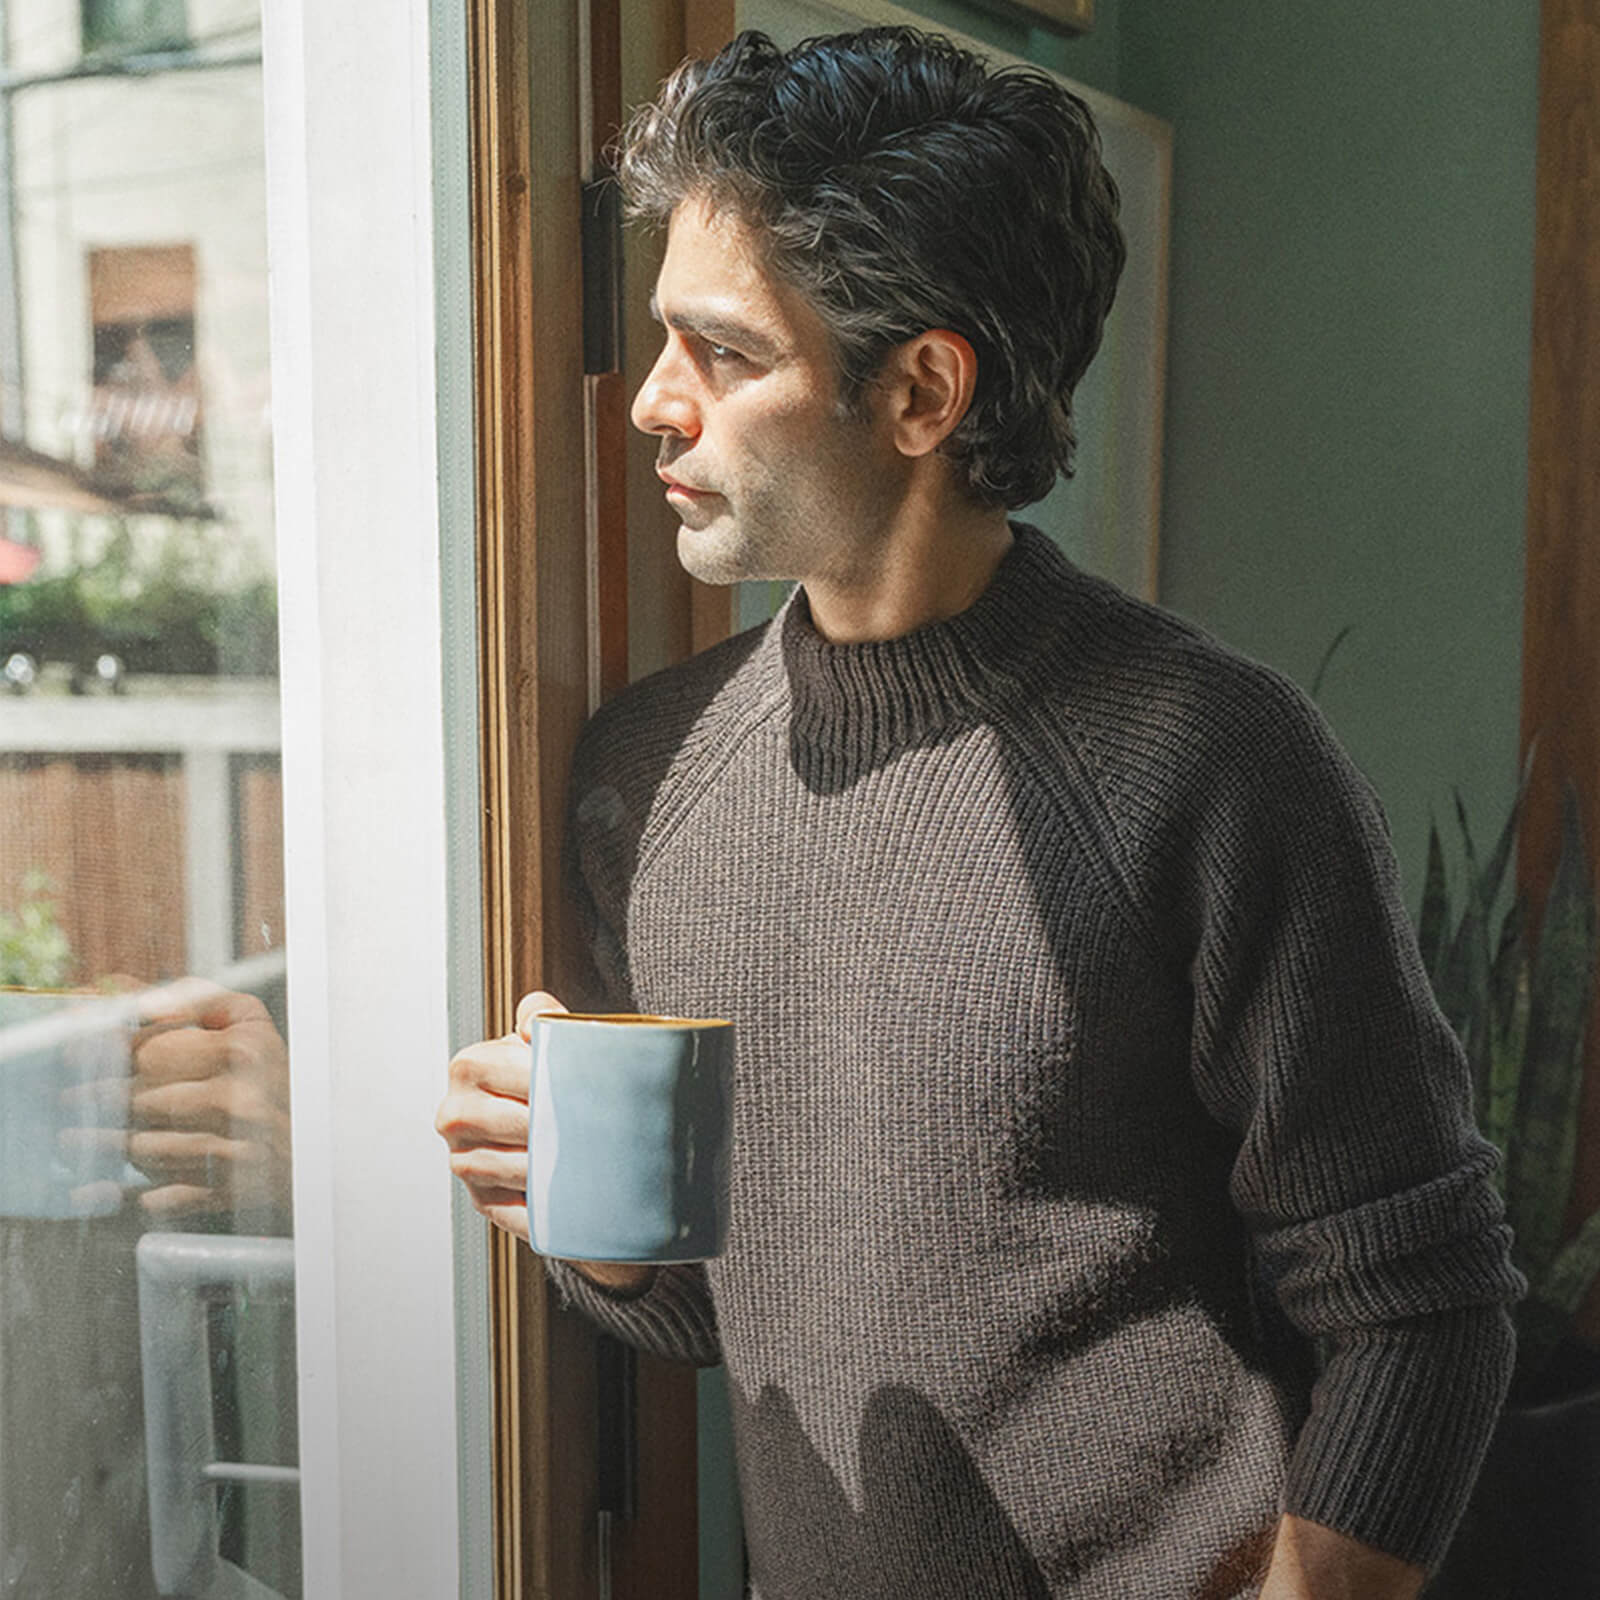 Adrian Grenier by a window having a drink in a cup